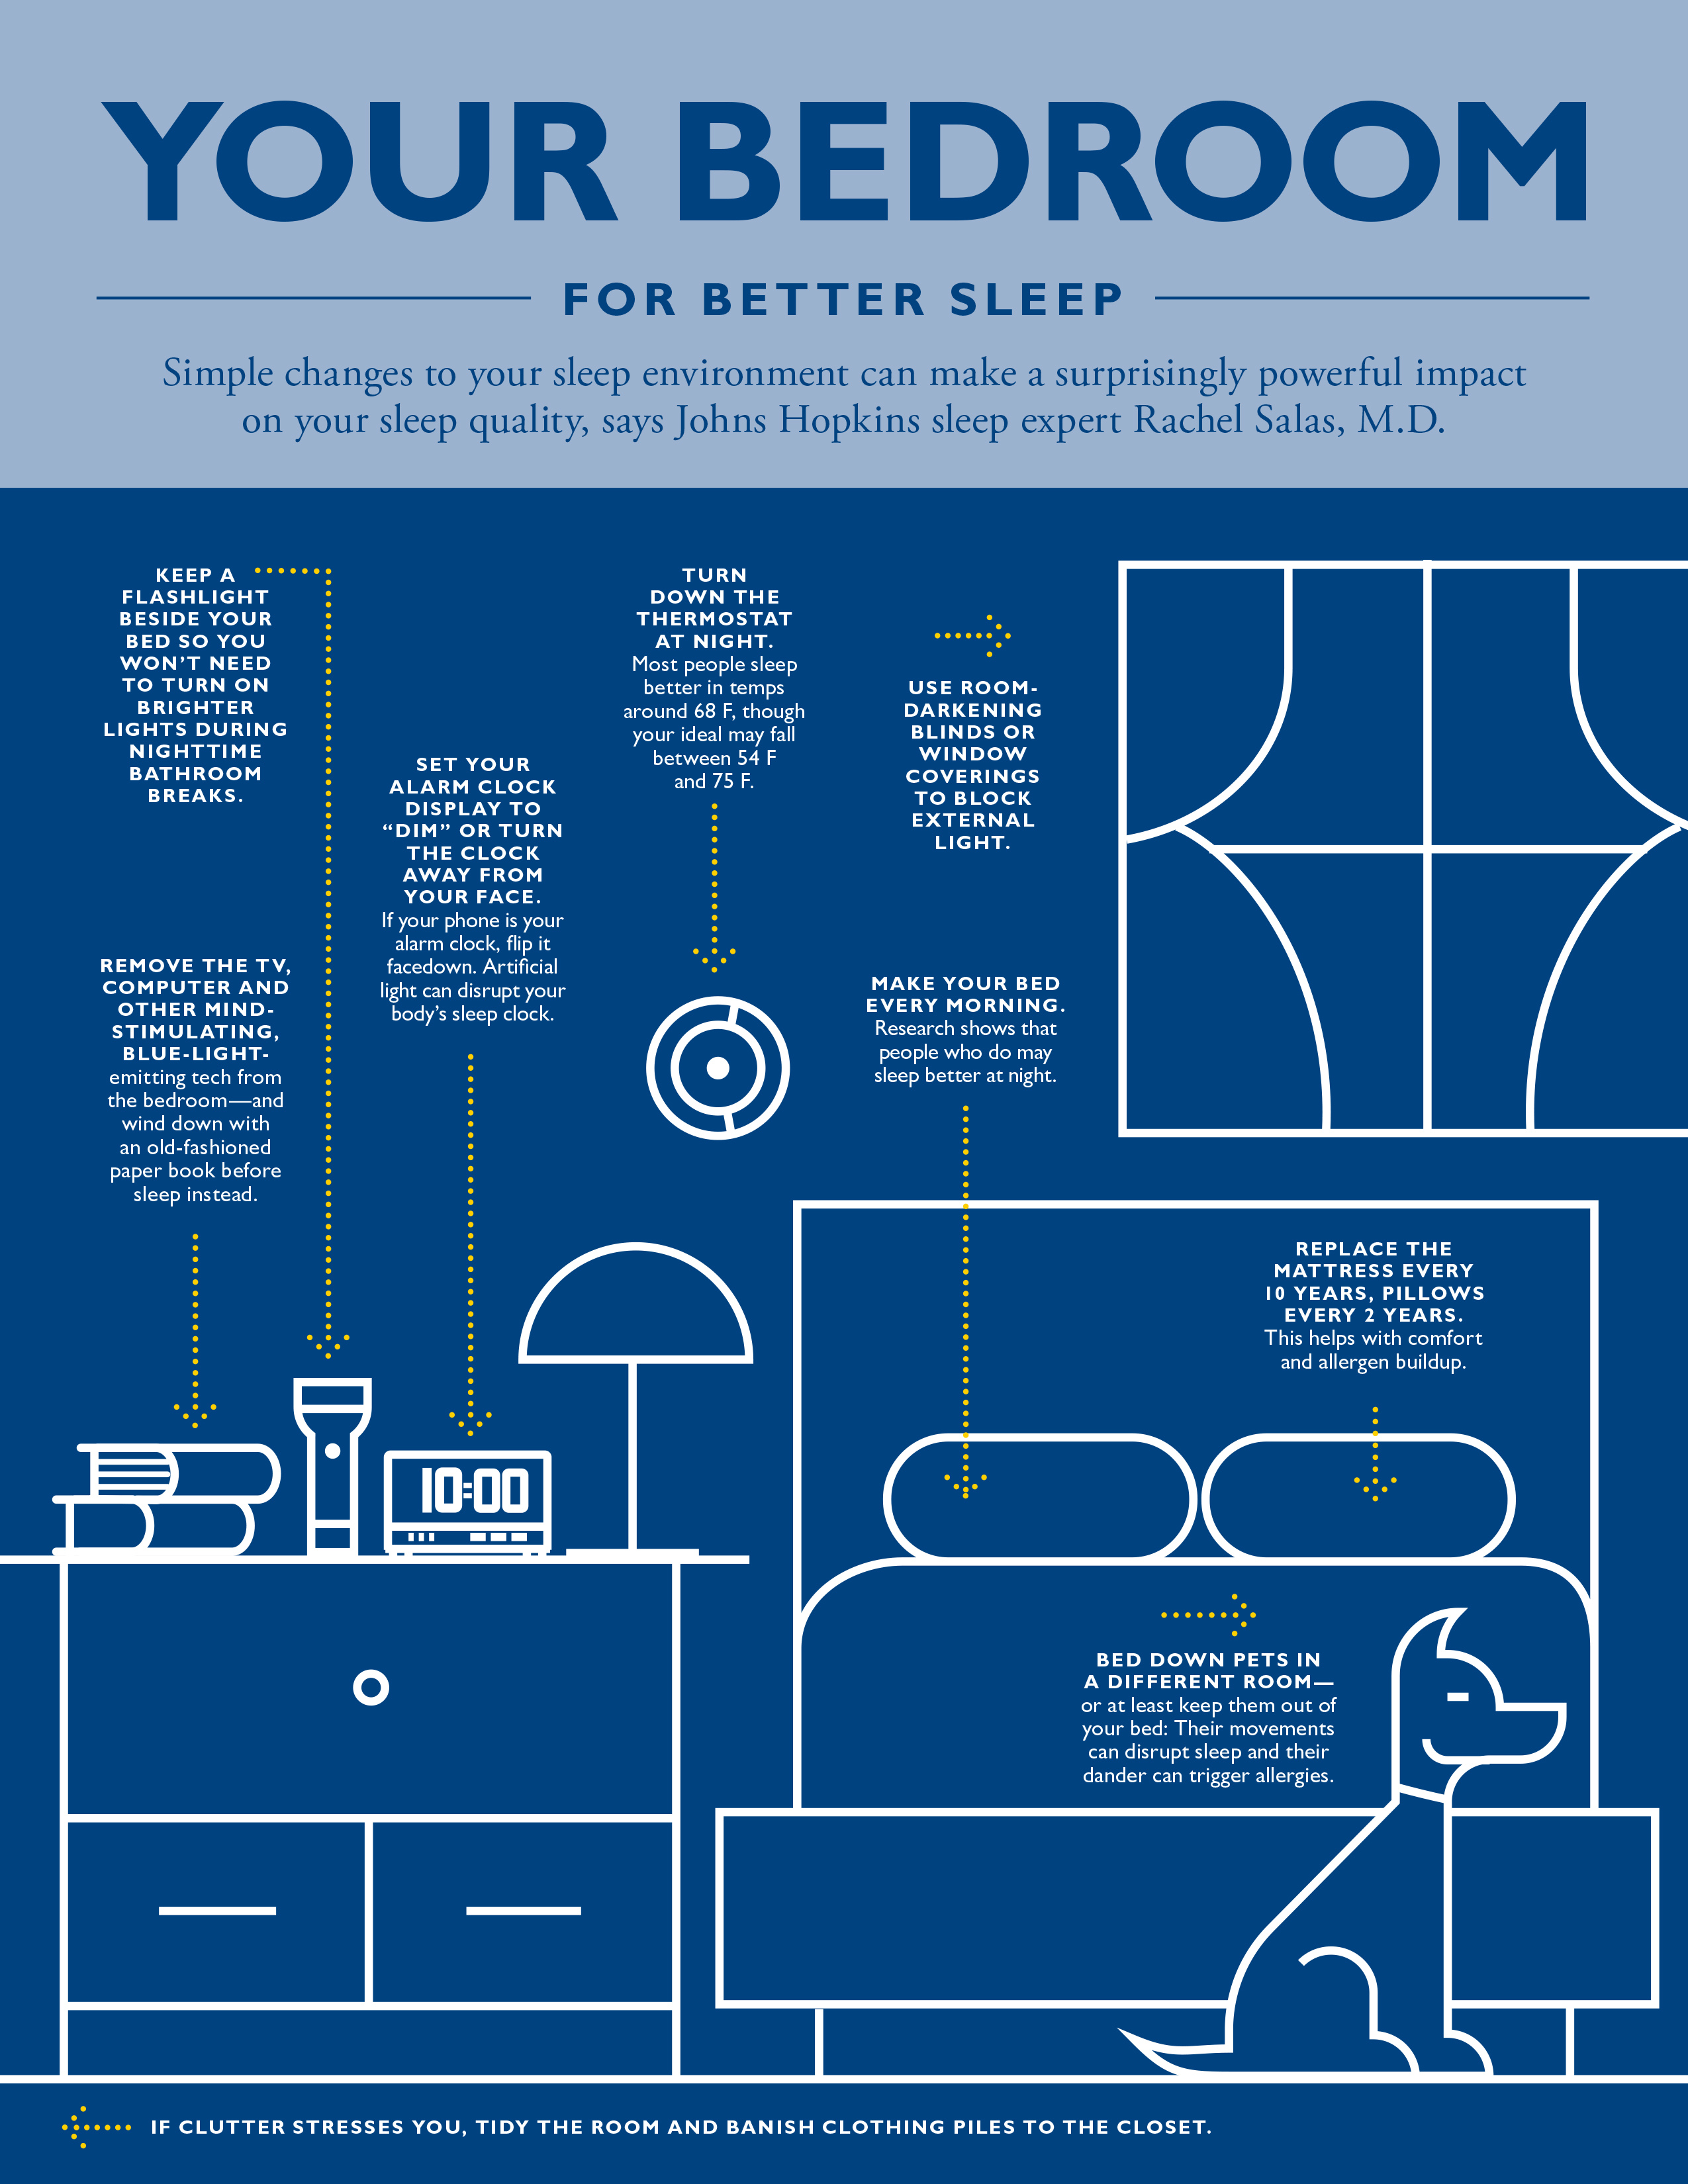 Johns Hopkins Medicine  Your Bedroom for Better Sleep. Sleep Better by Changing Your Bedroom  Says Johns Hopkins Doctor